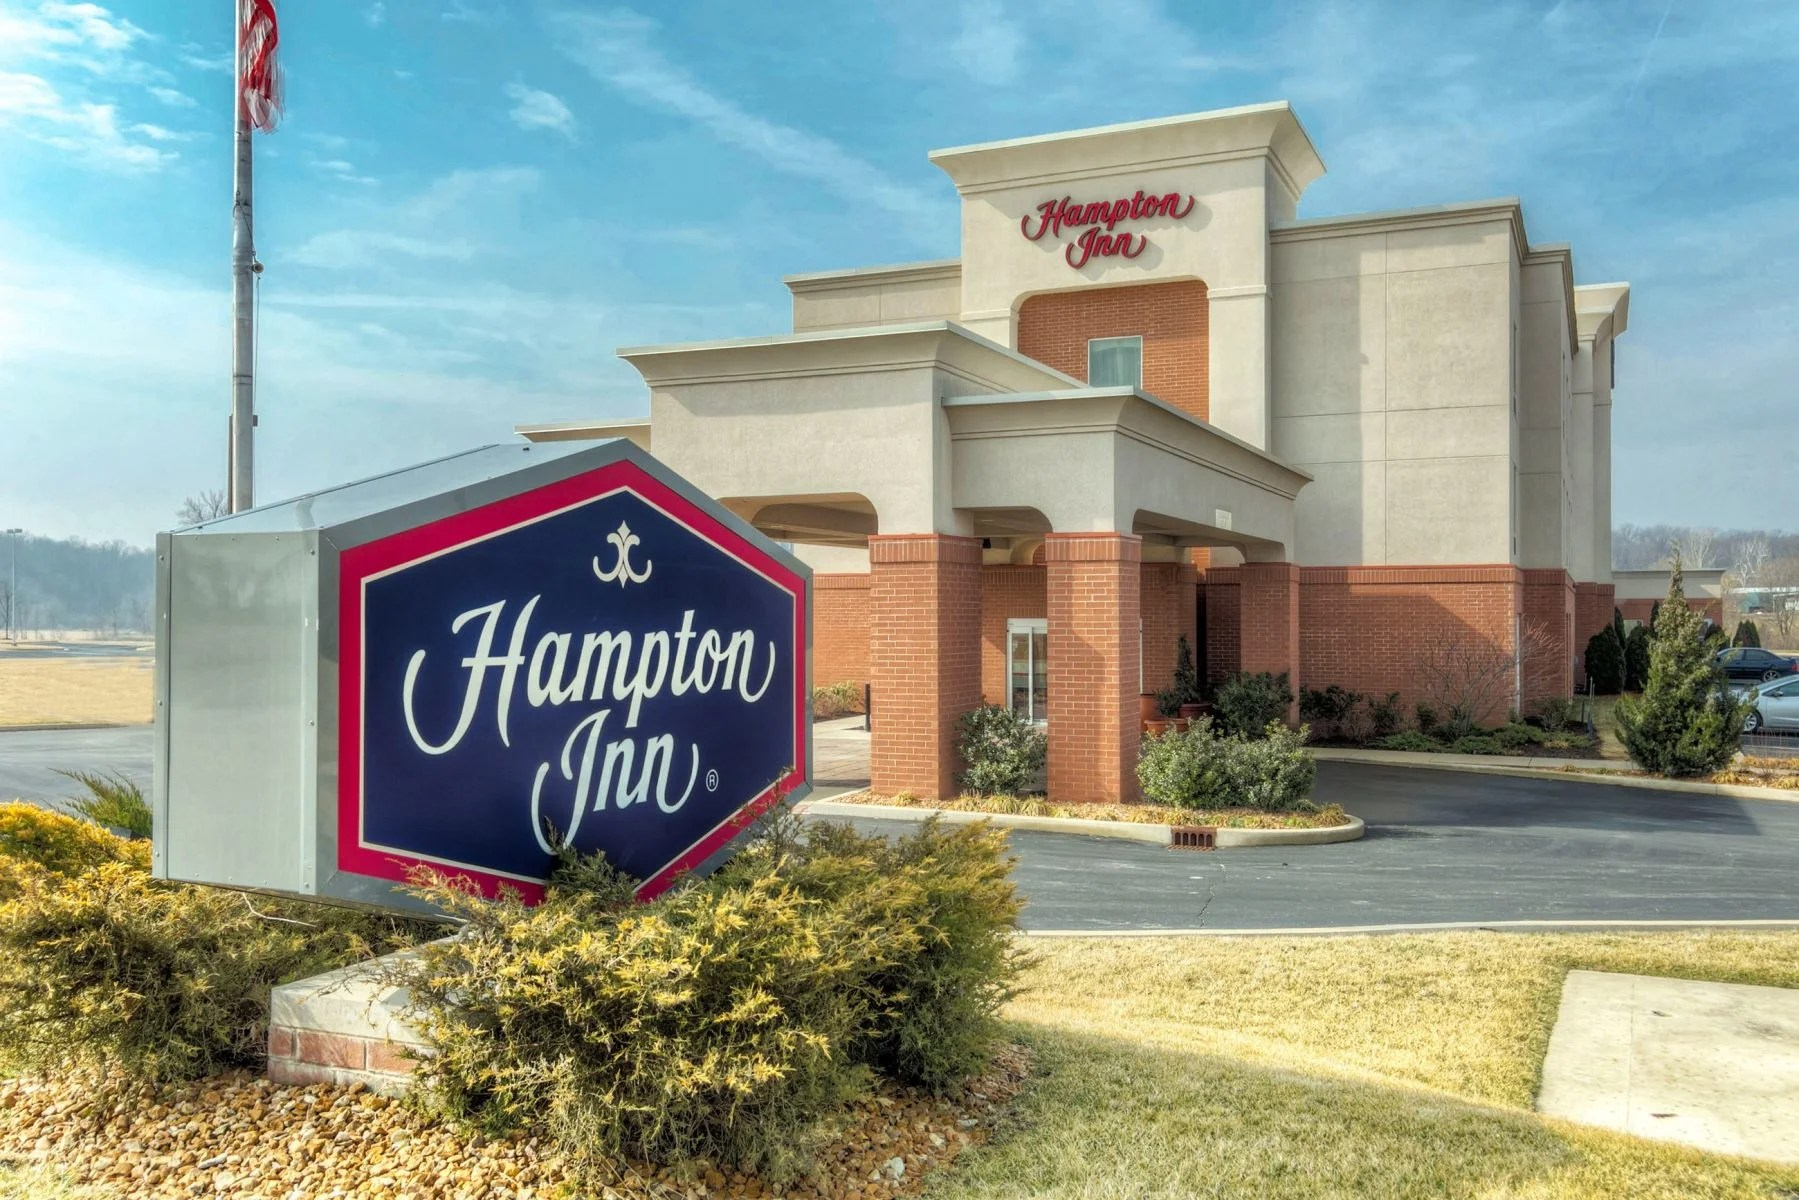 Use The Hilton Honors American Express Card's Welcome Bonus for 5 Night Stay at a Hampton Inn Outside of St. Louis